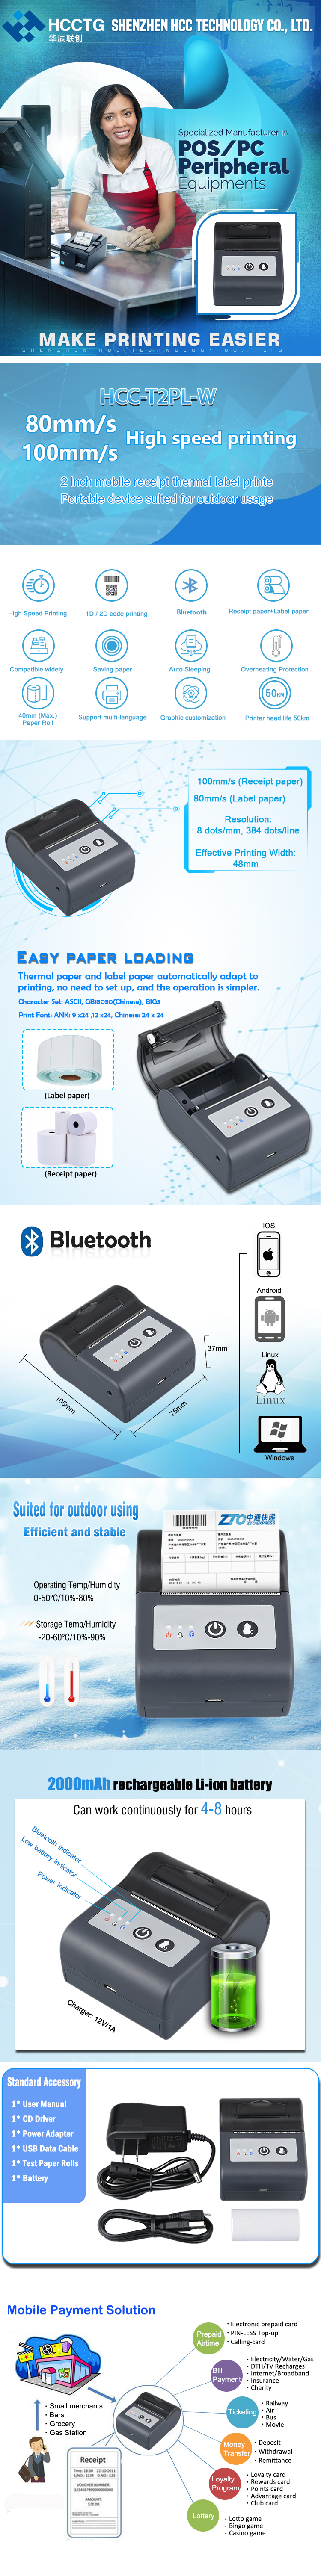 2inch Mini Mobile Print Machine Thermal Wireless Barcode Label Printer Android HCC-T2PL-W